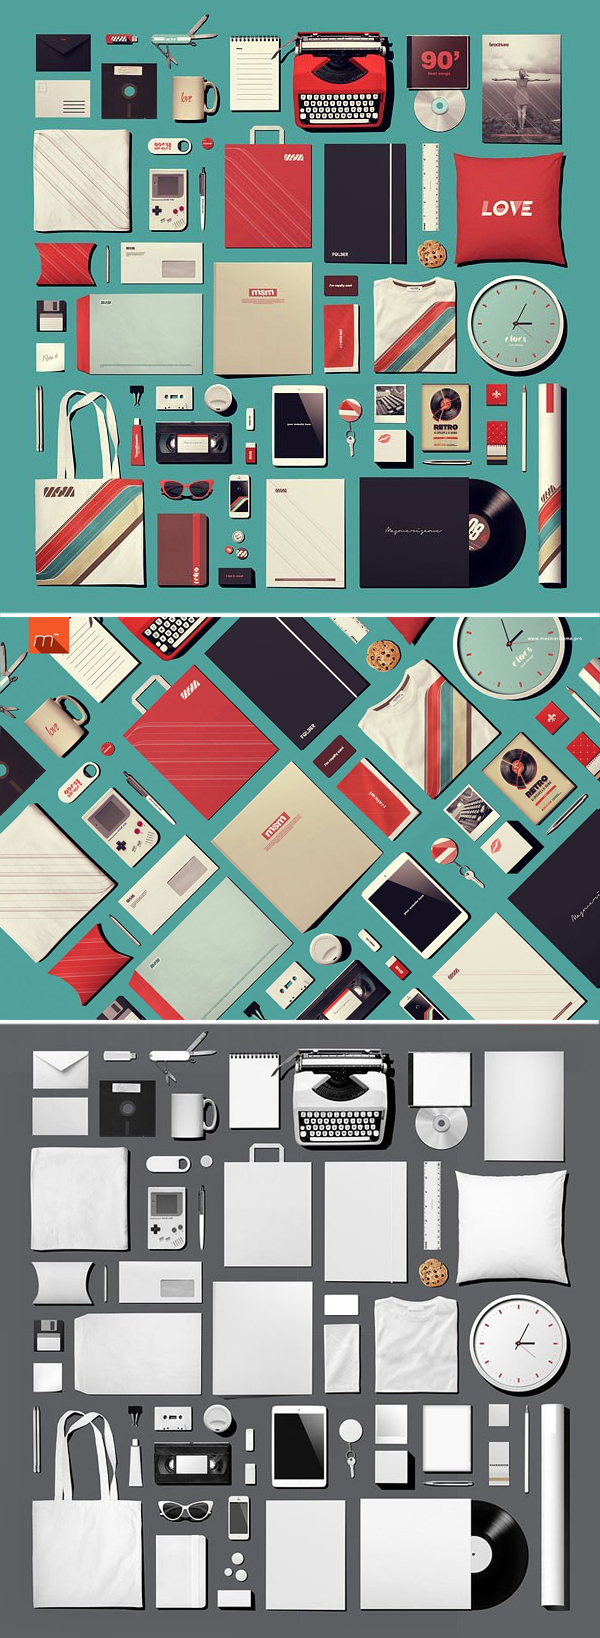 Retro Stationery Identity Mock-Up